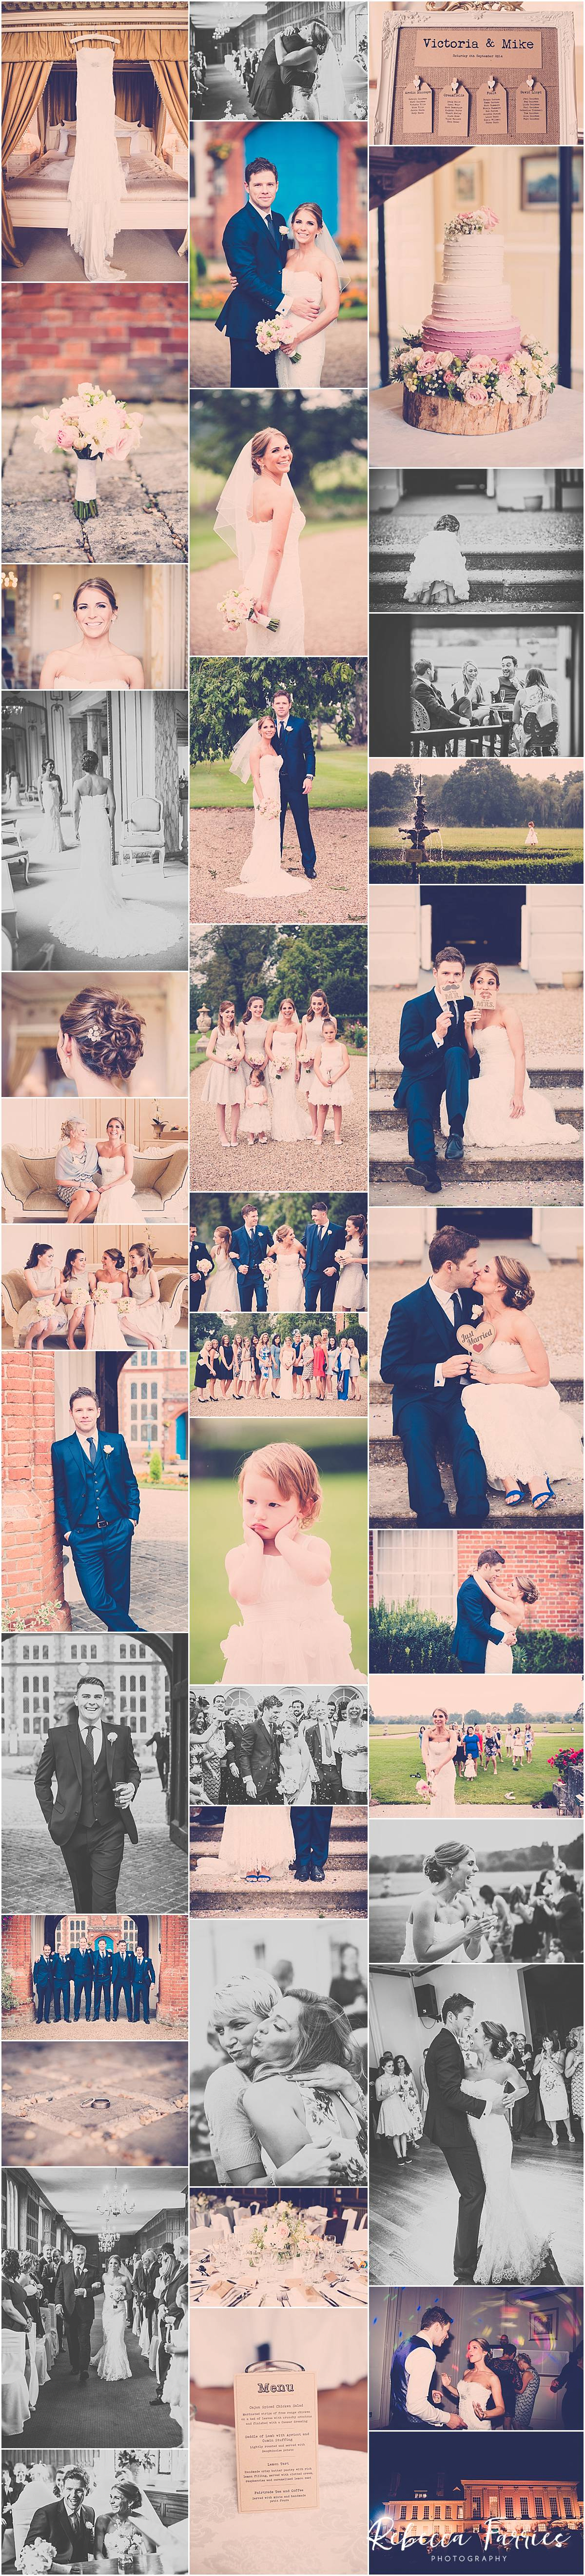 Collage of wedding photographs taken at Gosfield Hall in Essex